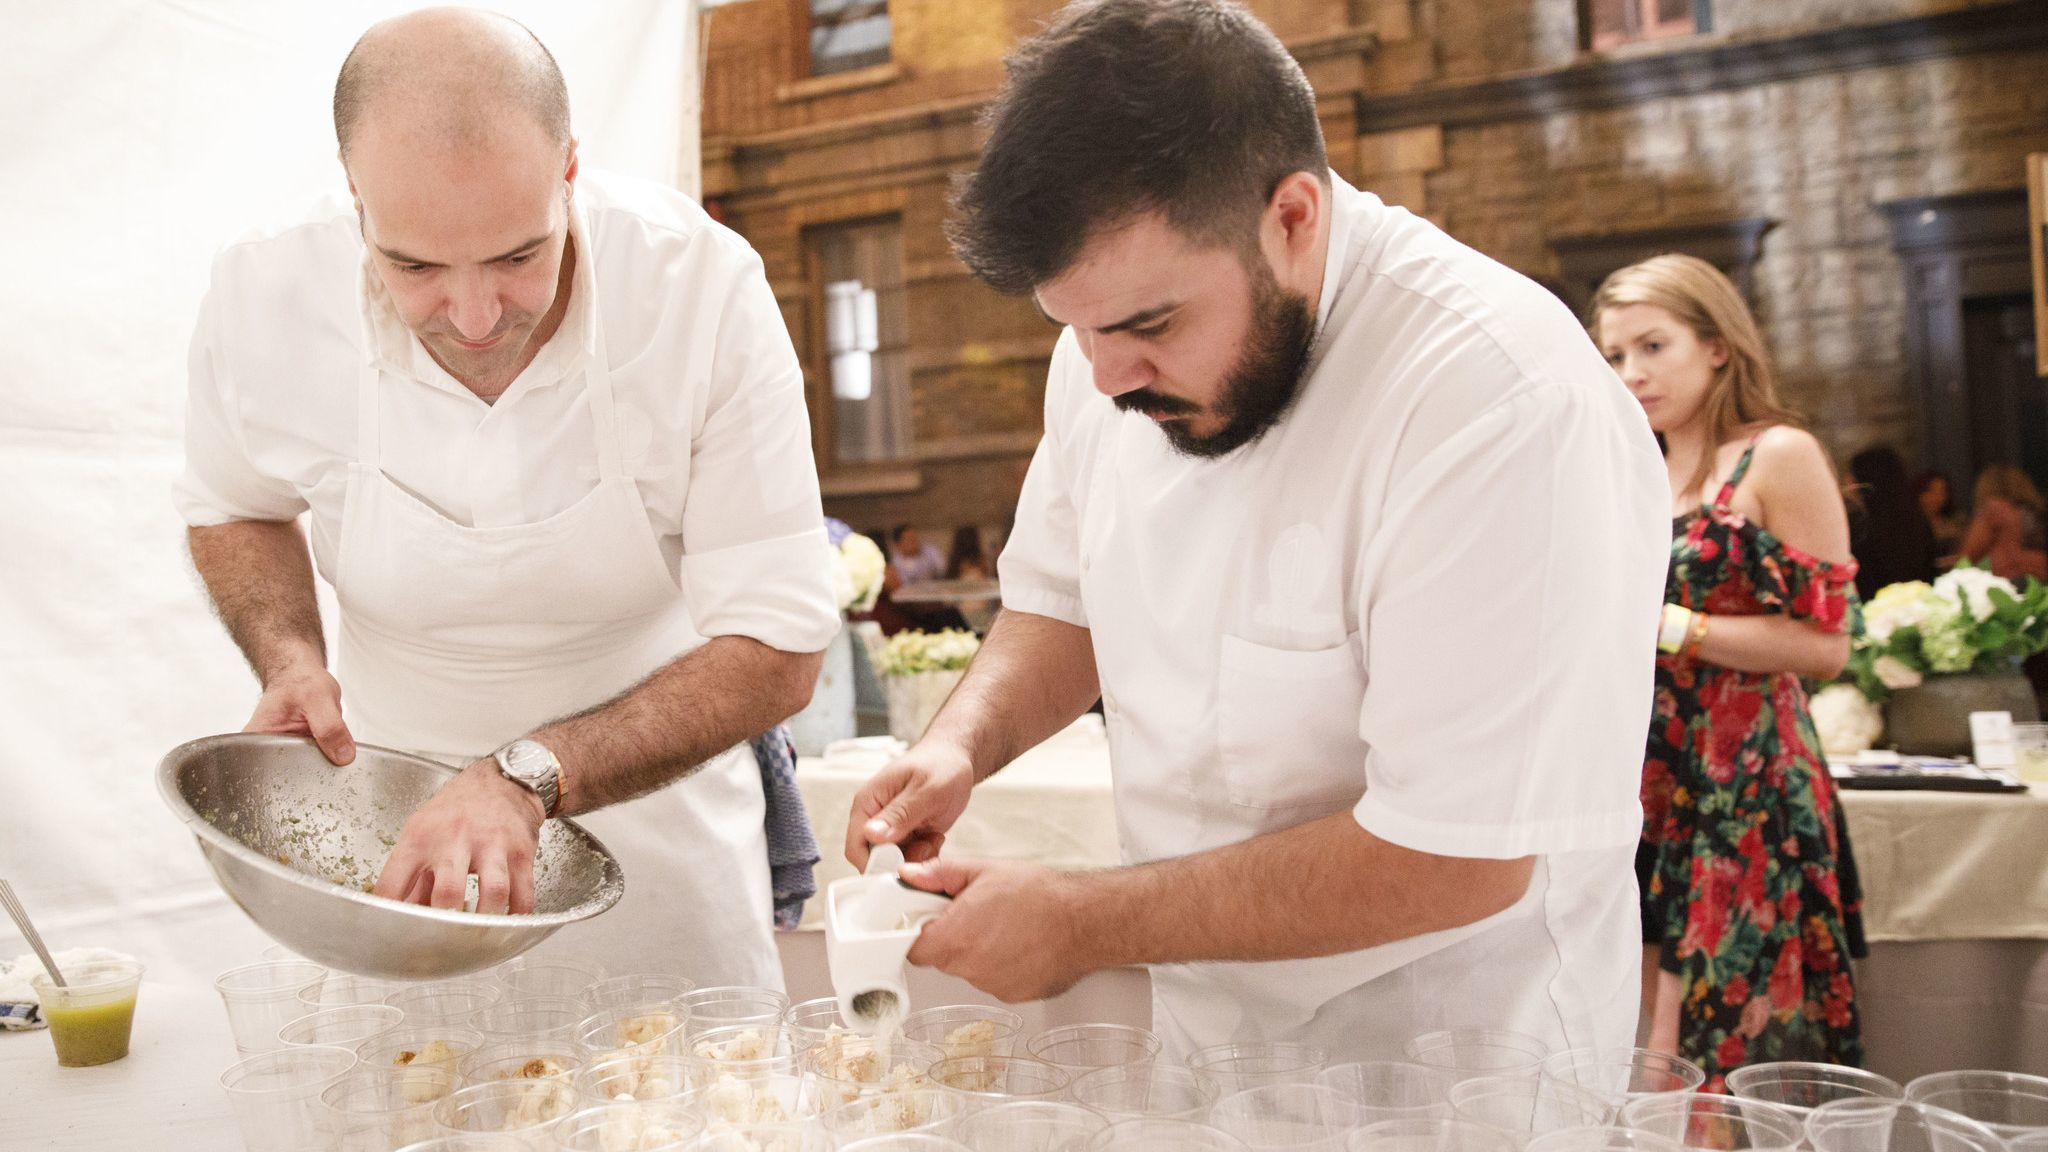 Vartan Abgaryan, executive chef, left, and Javier Lopez, chef de cuisine, of 71 Above, prepare crisp